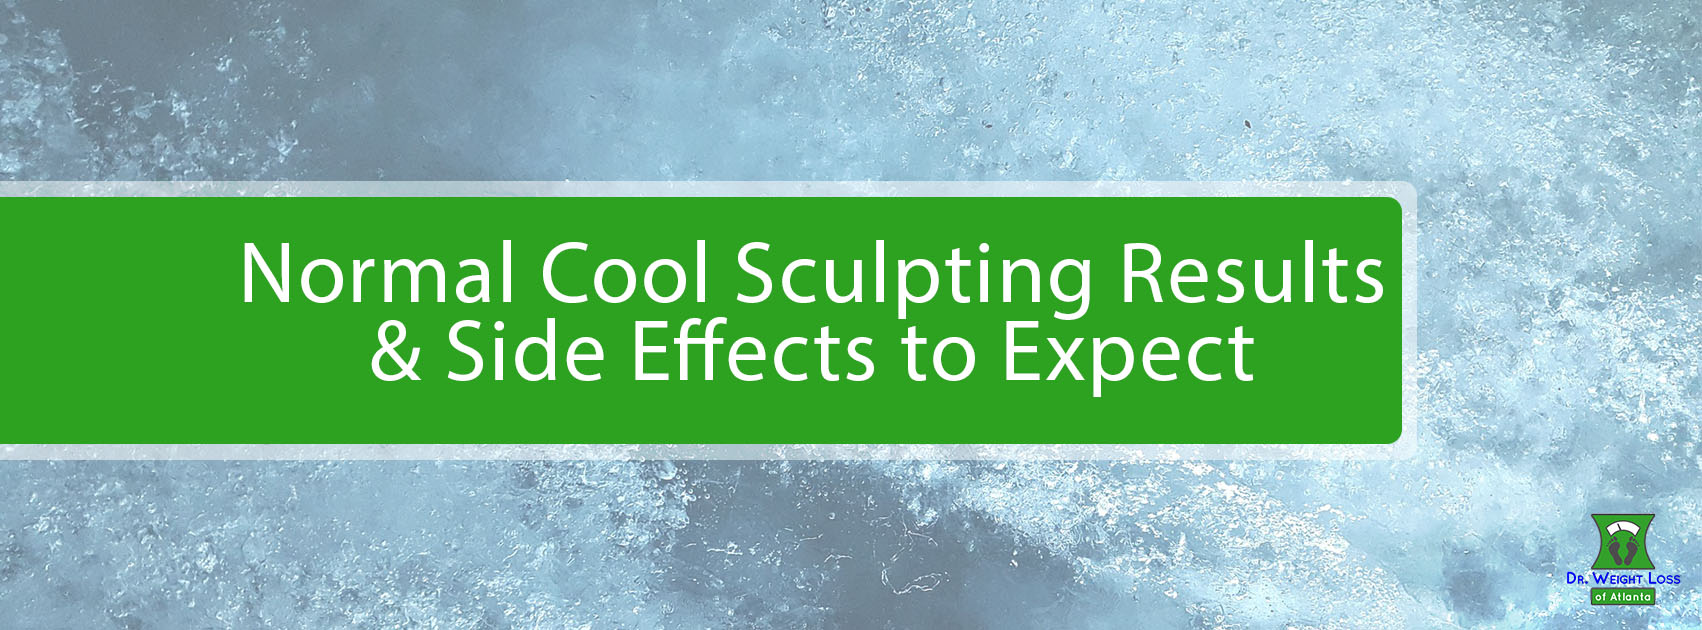 Normal Cool Sculpting Results & Side Effects to Expect ...